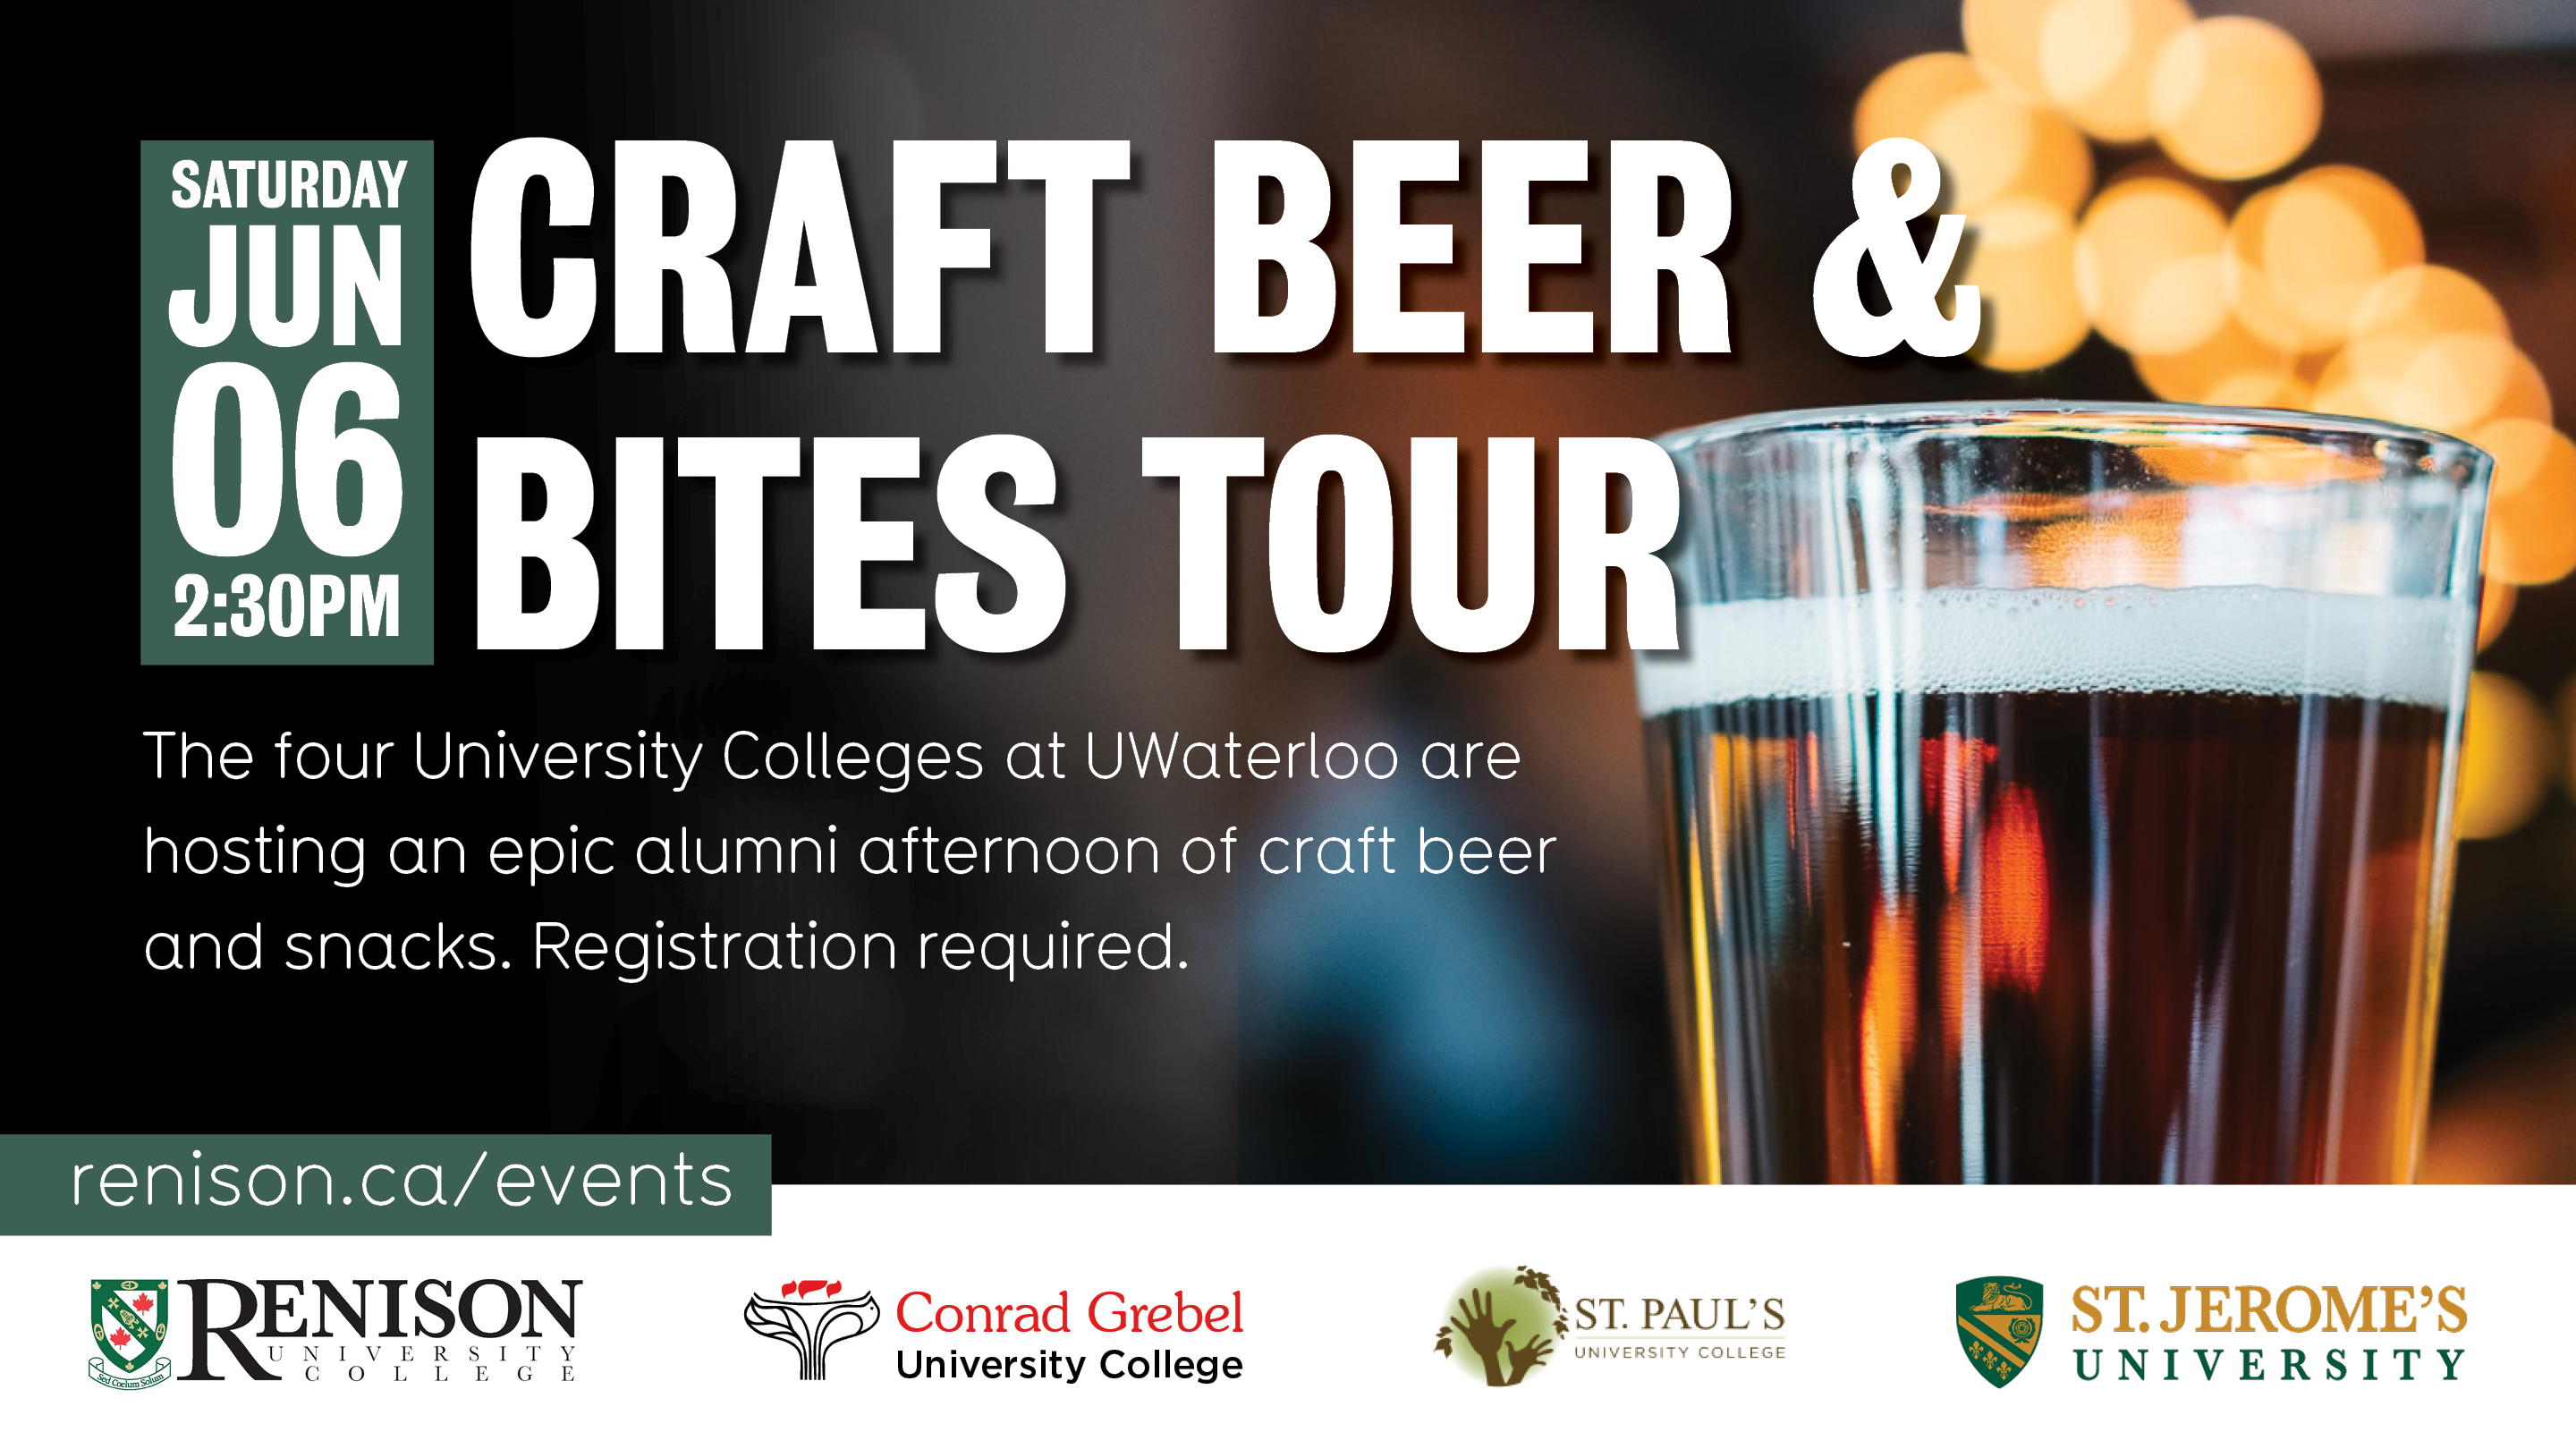 Poster with beer glass. Craft beer and bites tour. The four university colleges at Waterloo are hosting a beer and bites event.